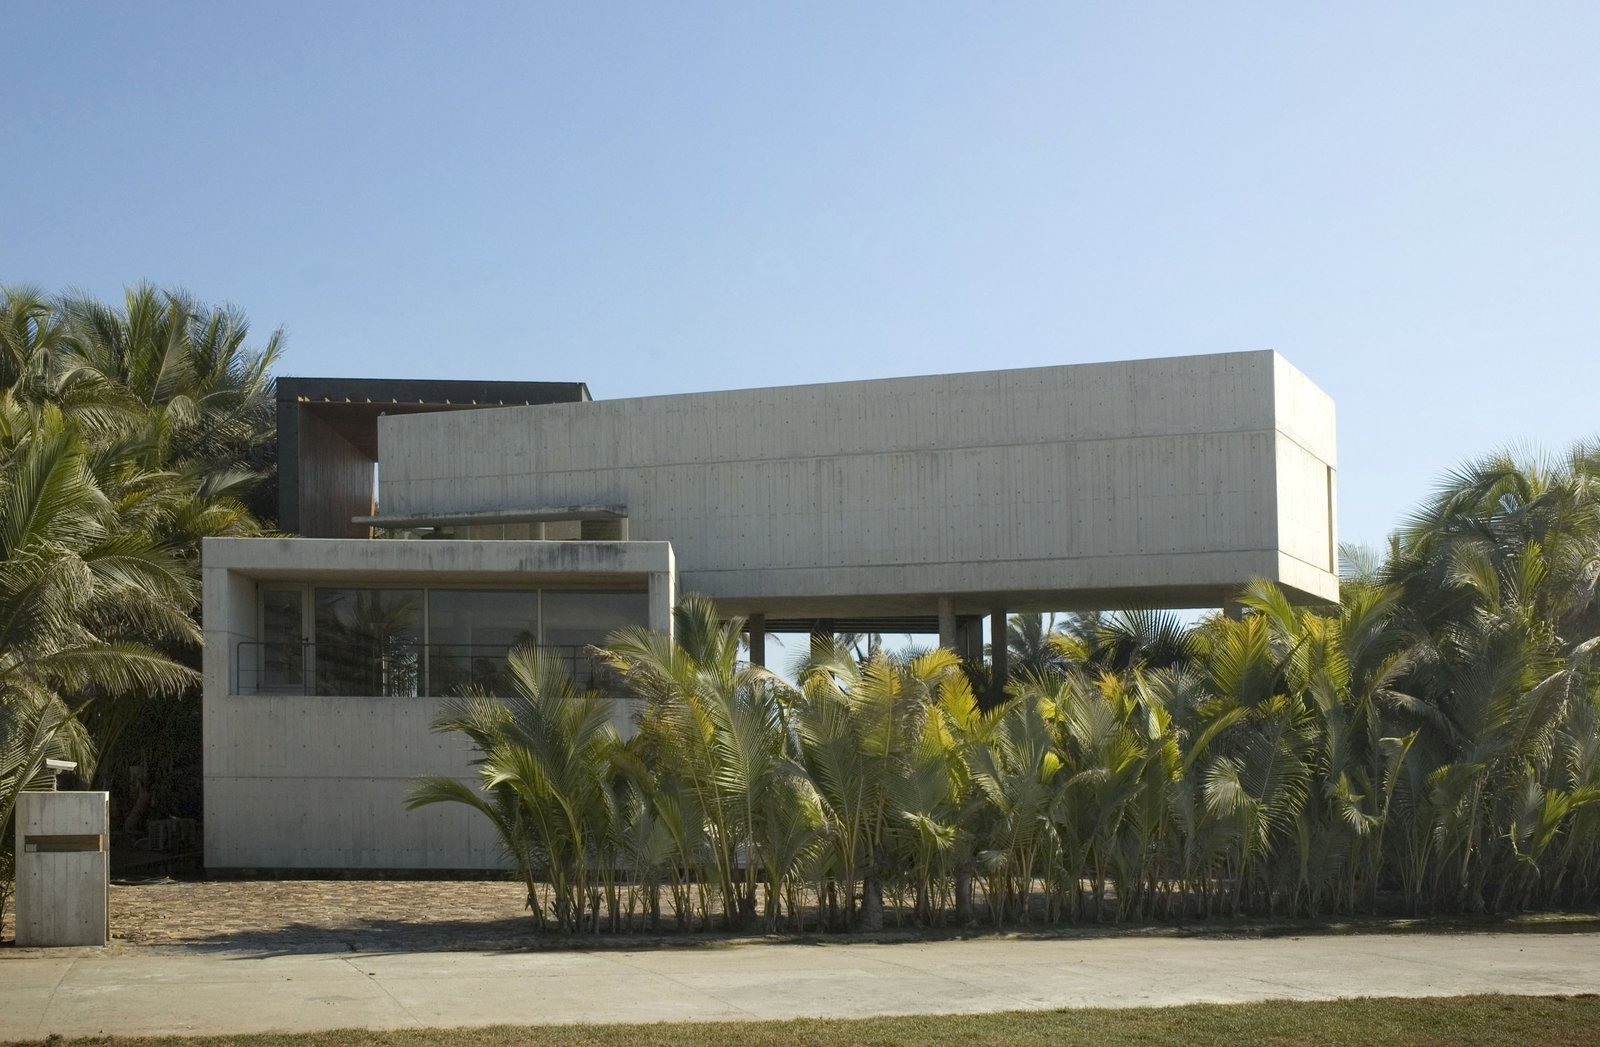 Pedestrian and Car Main Entry Tagged: Garage. La Caracola Beach House by PAUL CREMOUX studio